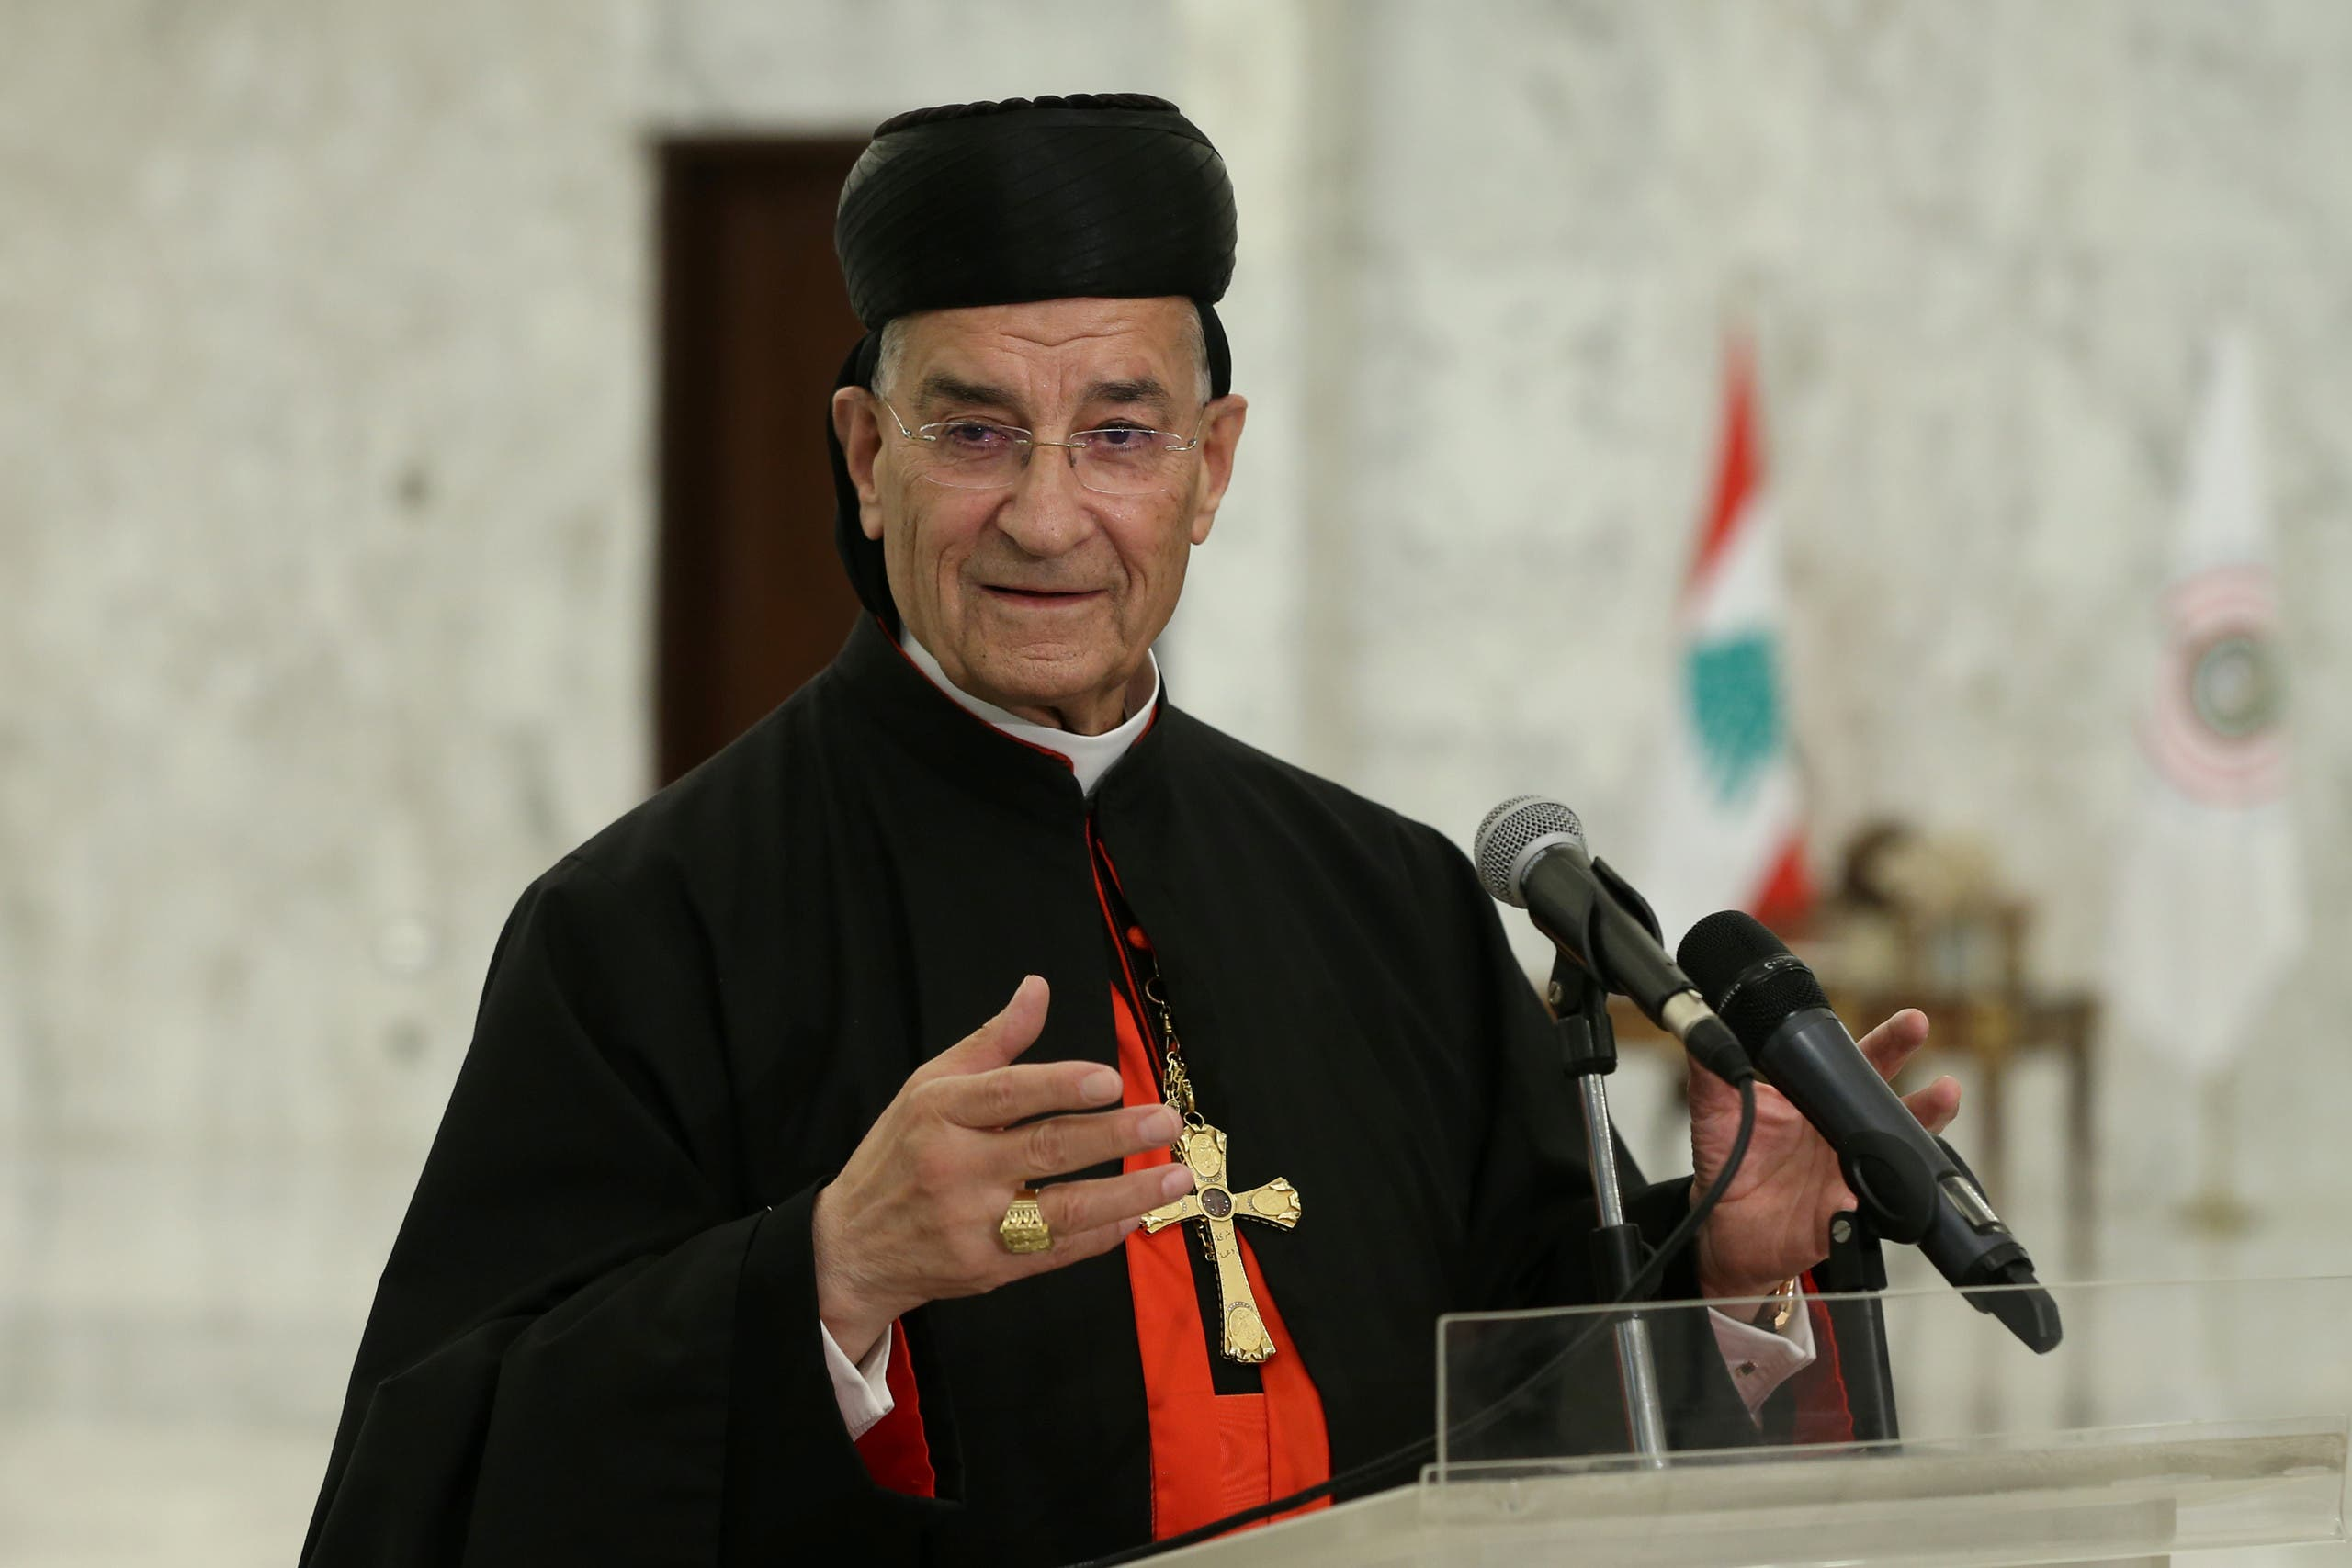 Lebanese Maronite Patriarch Bechara Boutros Al-Rai speaks after meeting with Lebanon's President Michel Aoun at the presidential palace in Baabda, Lebanon July 15, 2020. (Dalati Nohra/Handout via Reuters)